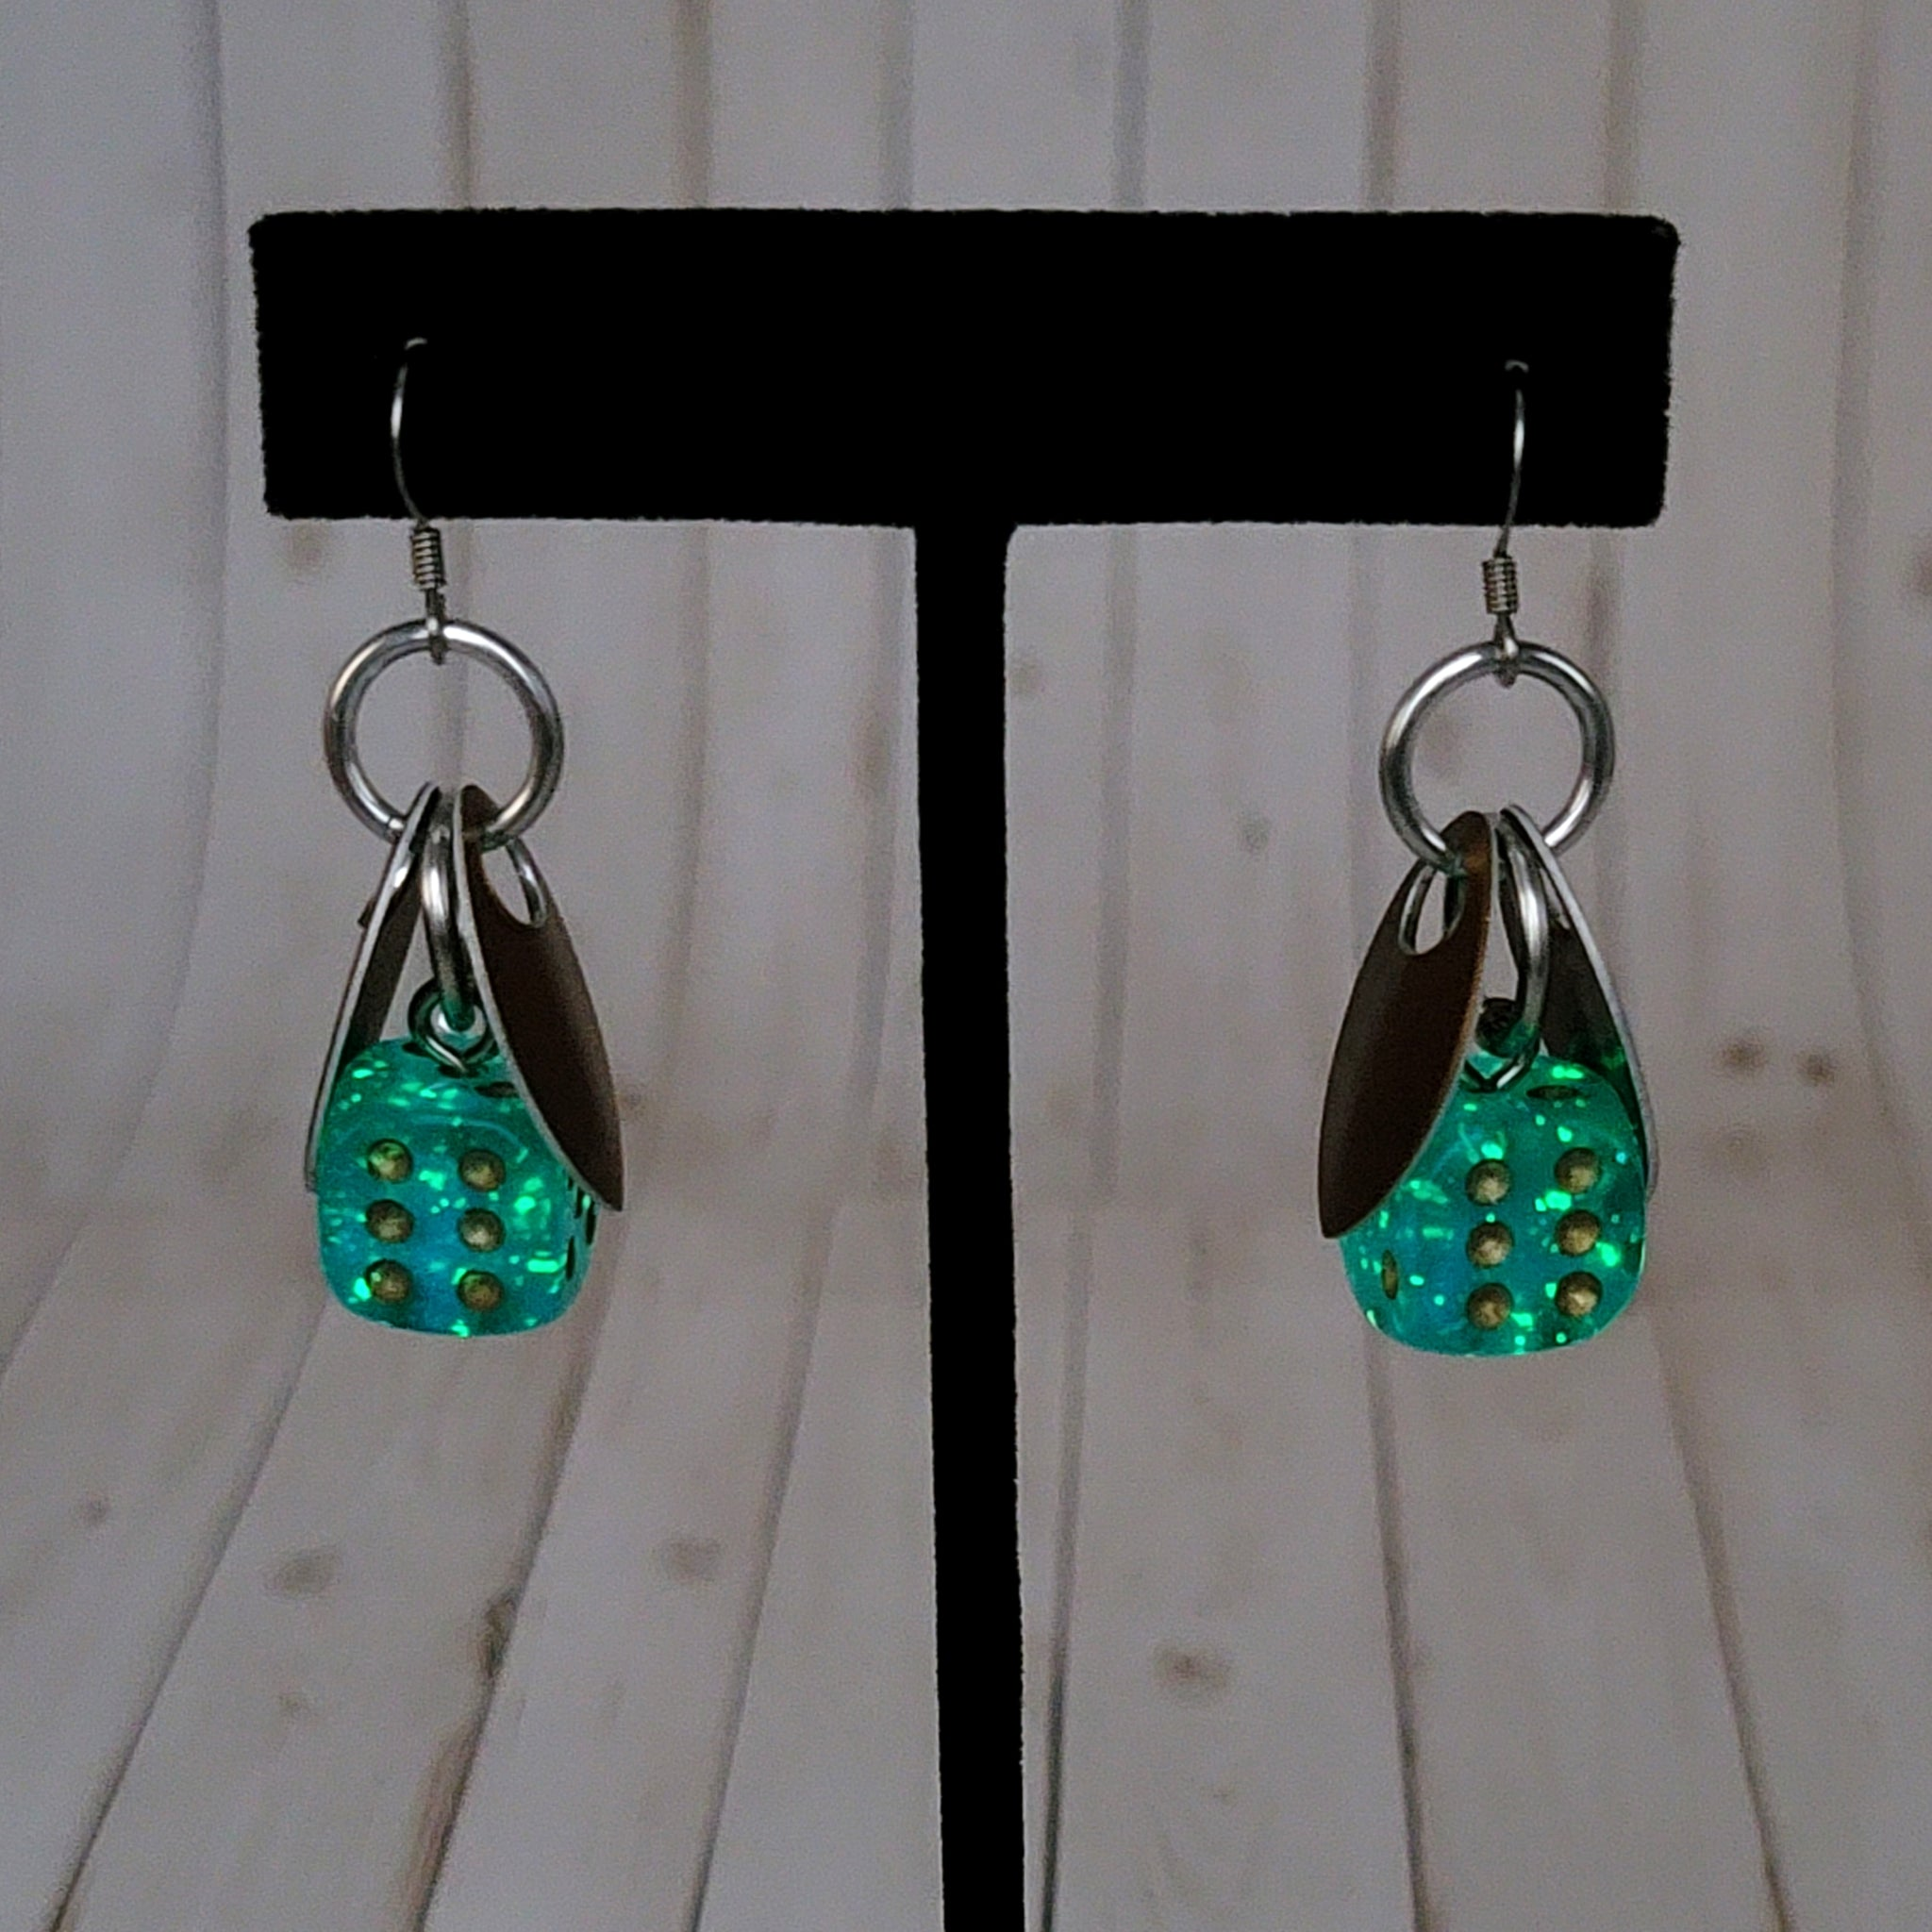 Luminary Borealis Teal Sprite 12mm D6 Earrings